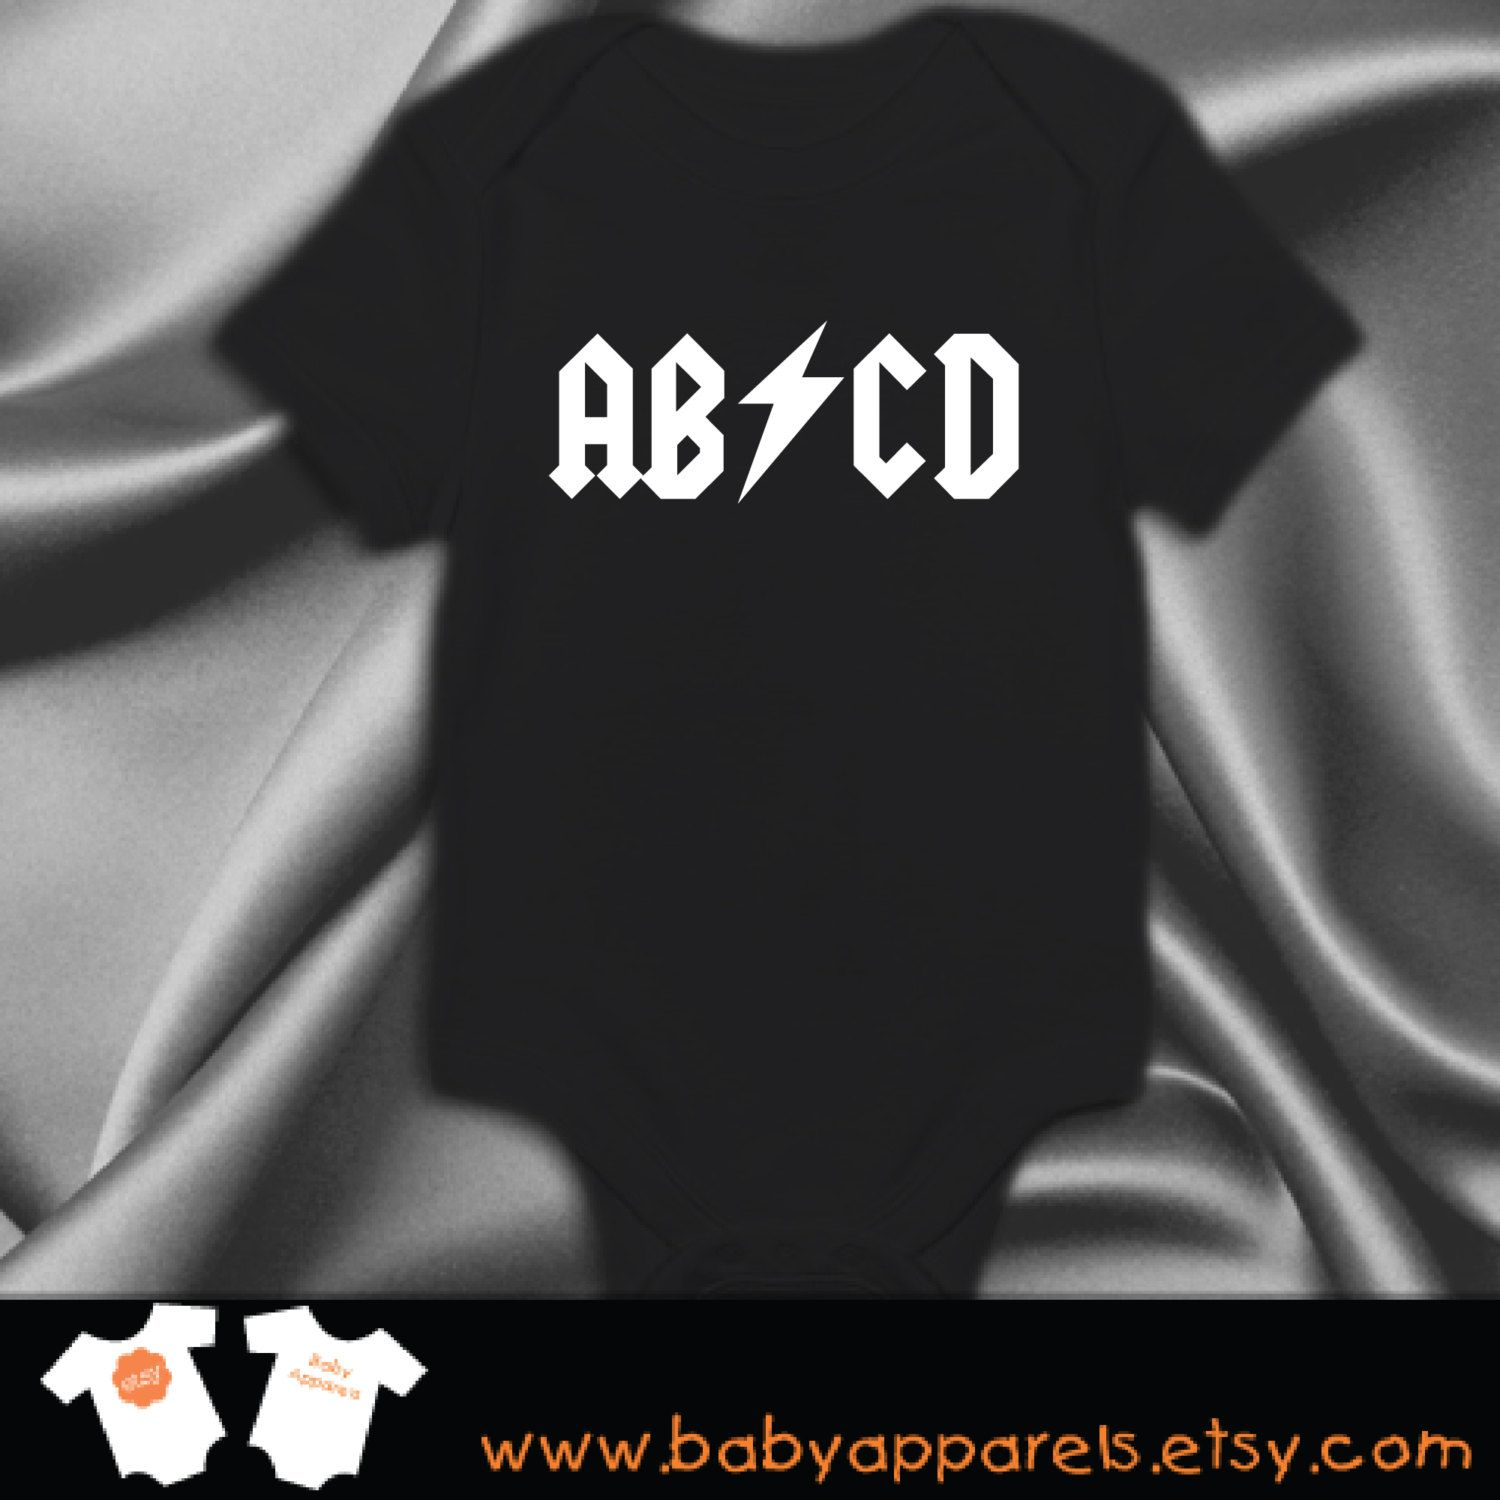 ABCD ACDC Rock Band baby Clothes Funny Baby Clothes Newborn Baby